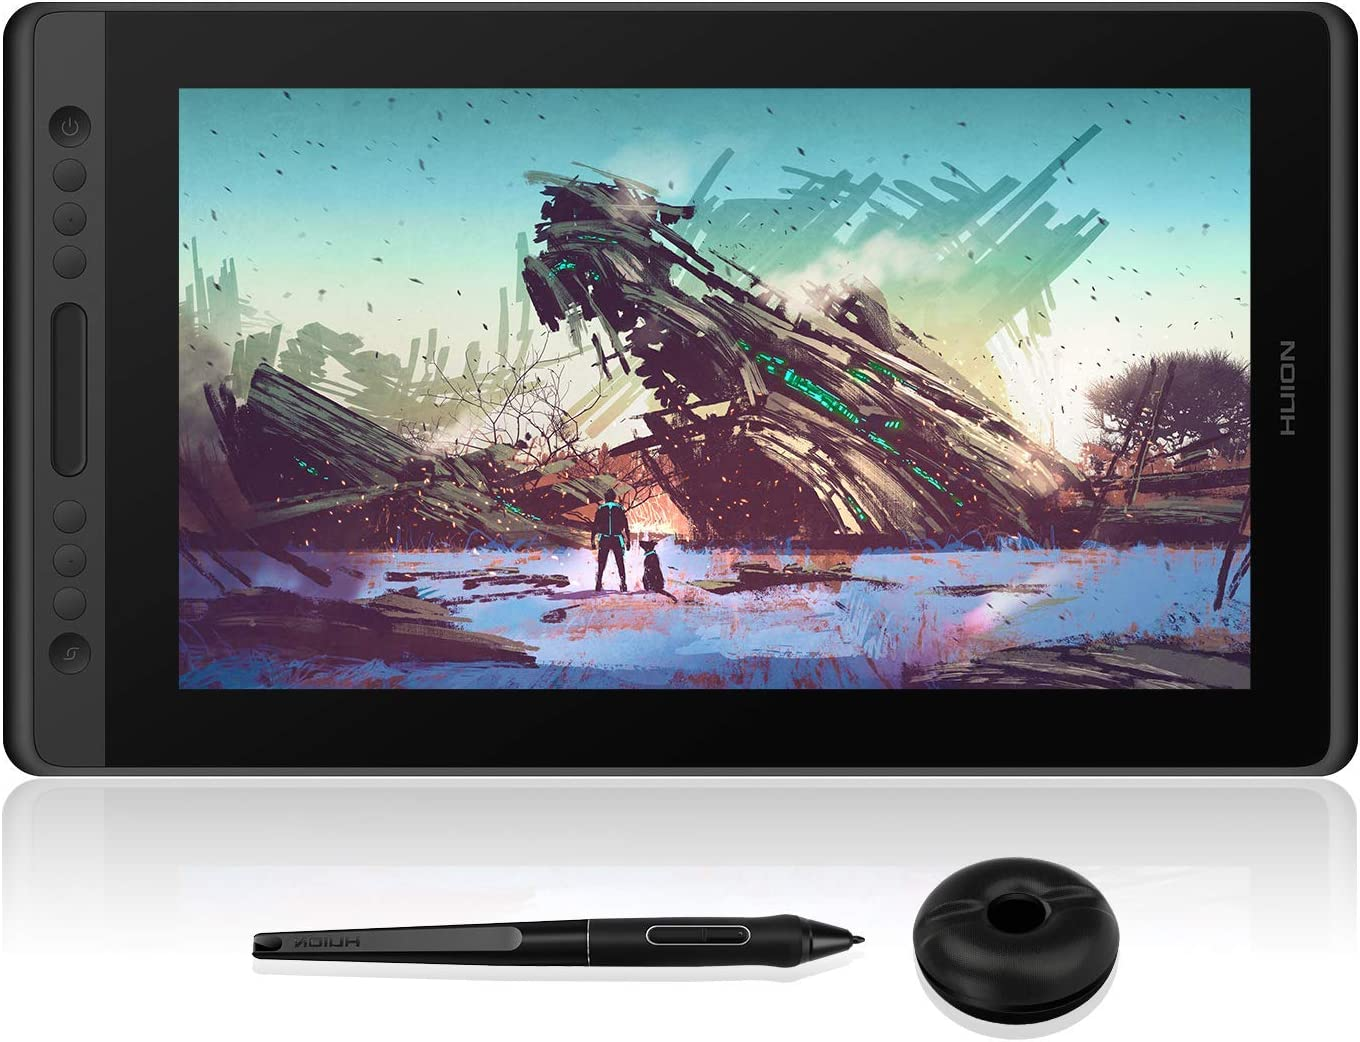 HUION Kamvas Pro 16 Drawing Monitor Pen Display 15.6 Inch IPS Full-Laminated Graphic Tablets with Screen, 8192 Battery-Free Pen, 120% sRGB